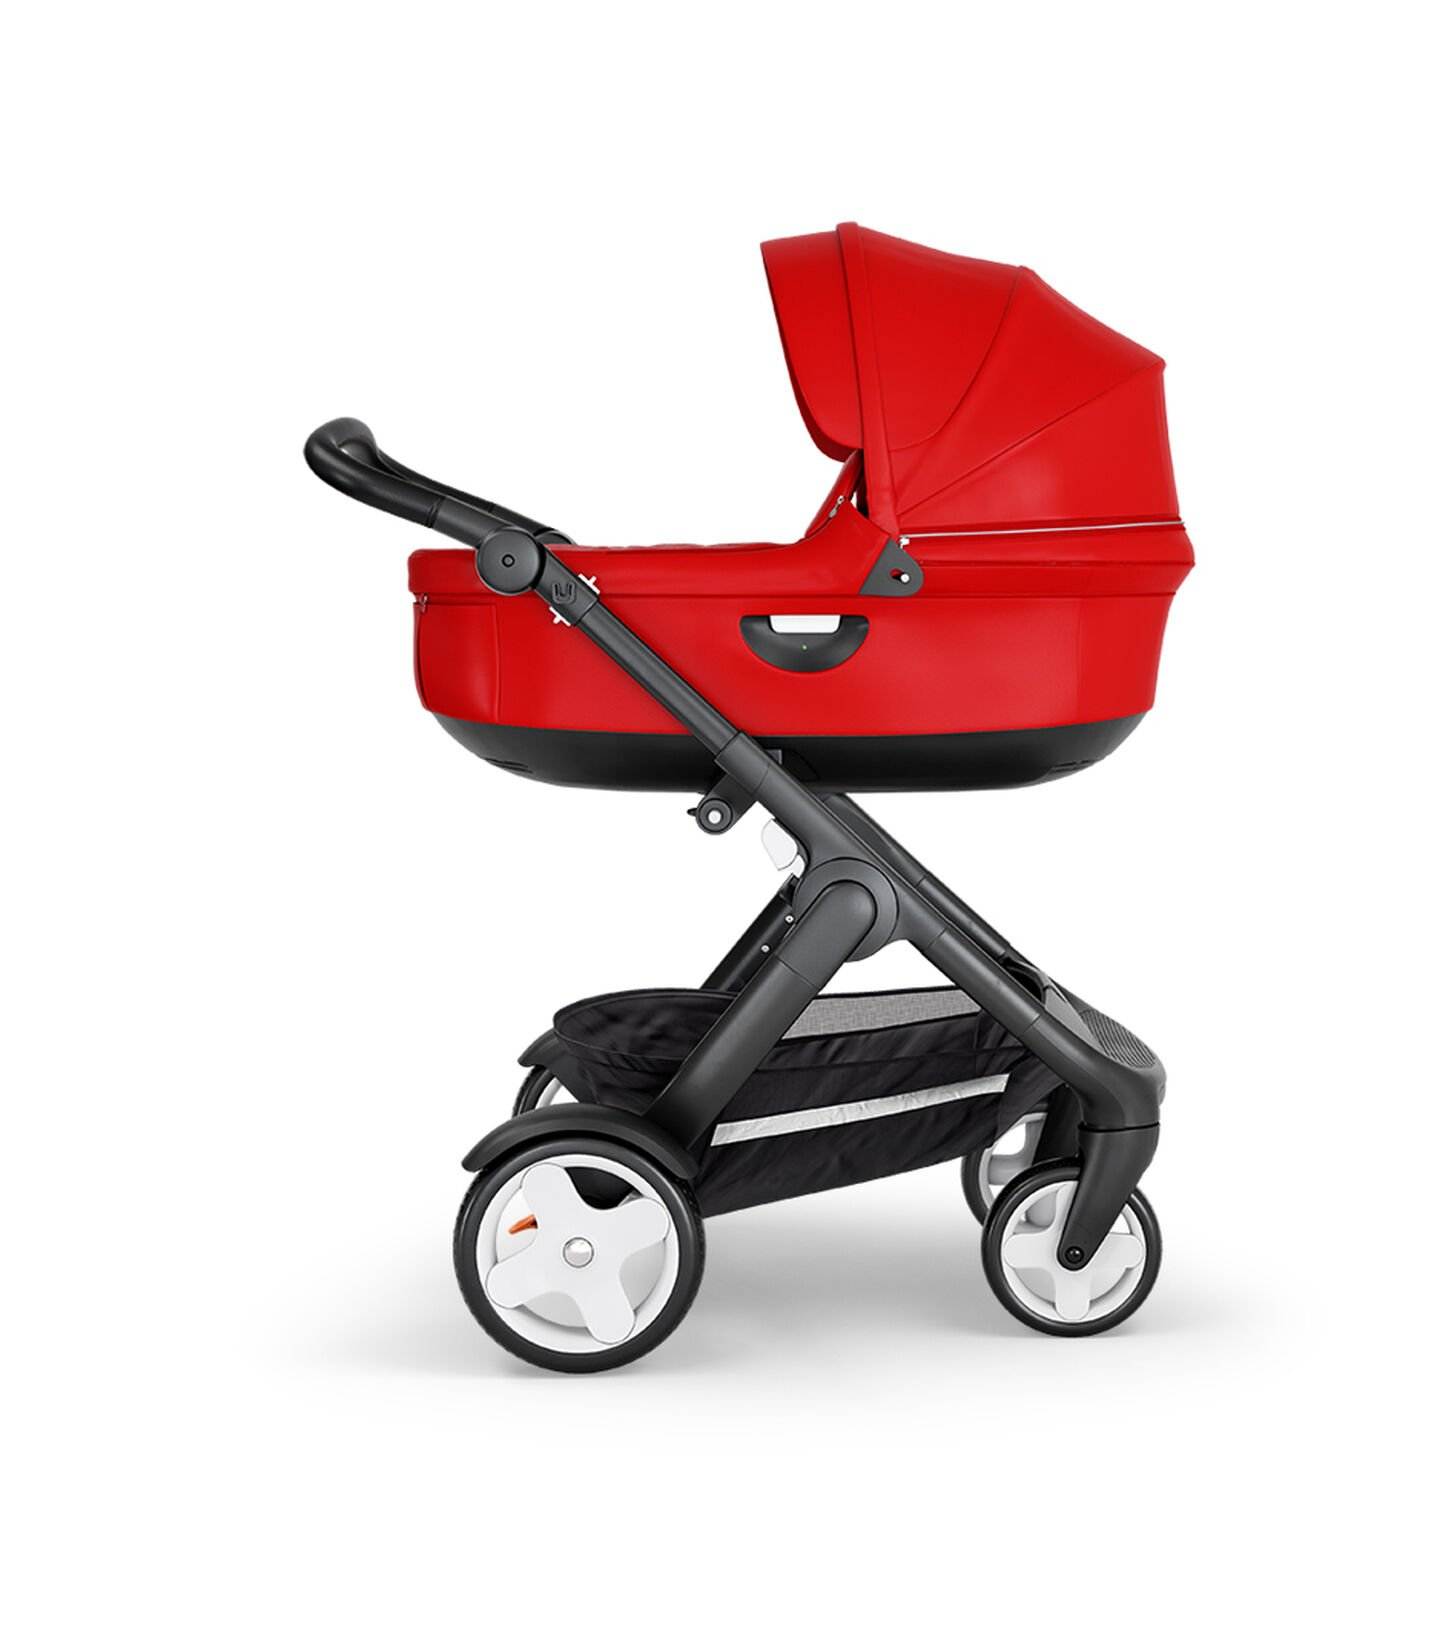 Stokke® Trailz™ with Black Chassis, Black Leatherette and Classic Wheels. Stokke® Stroller Carry Cot, Red